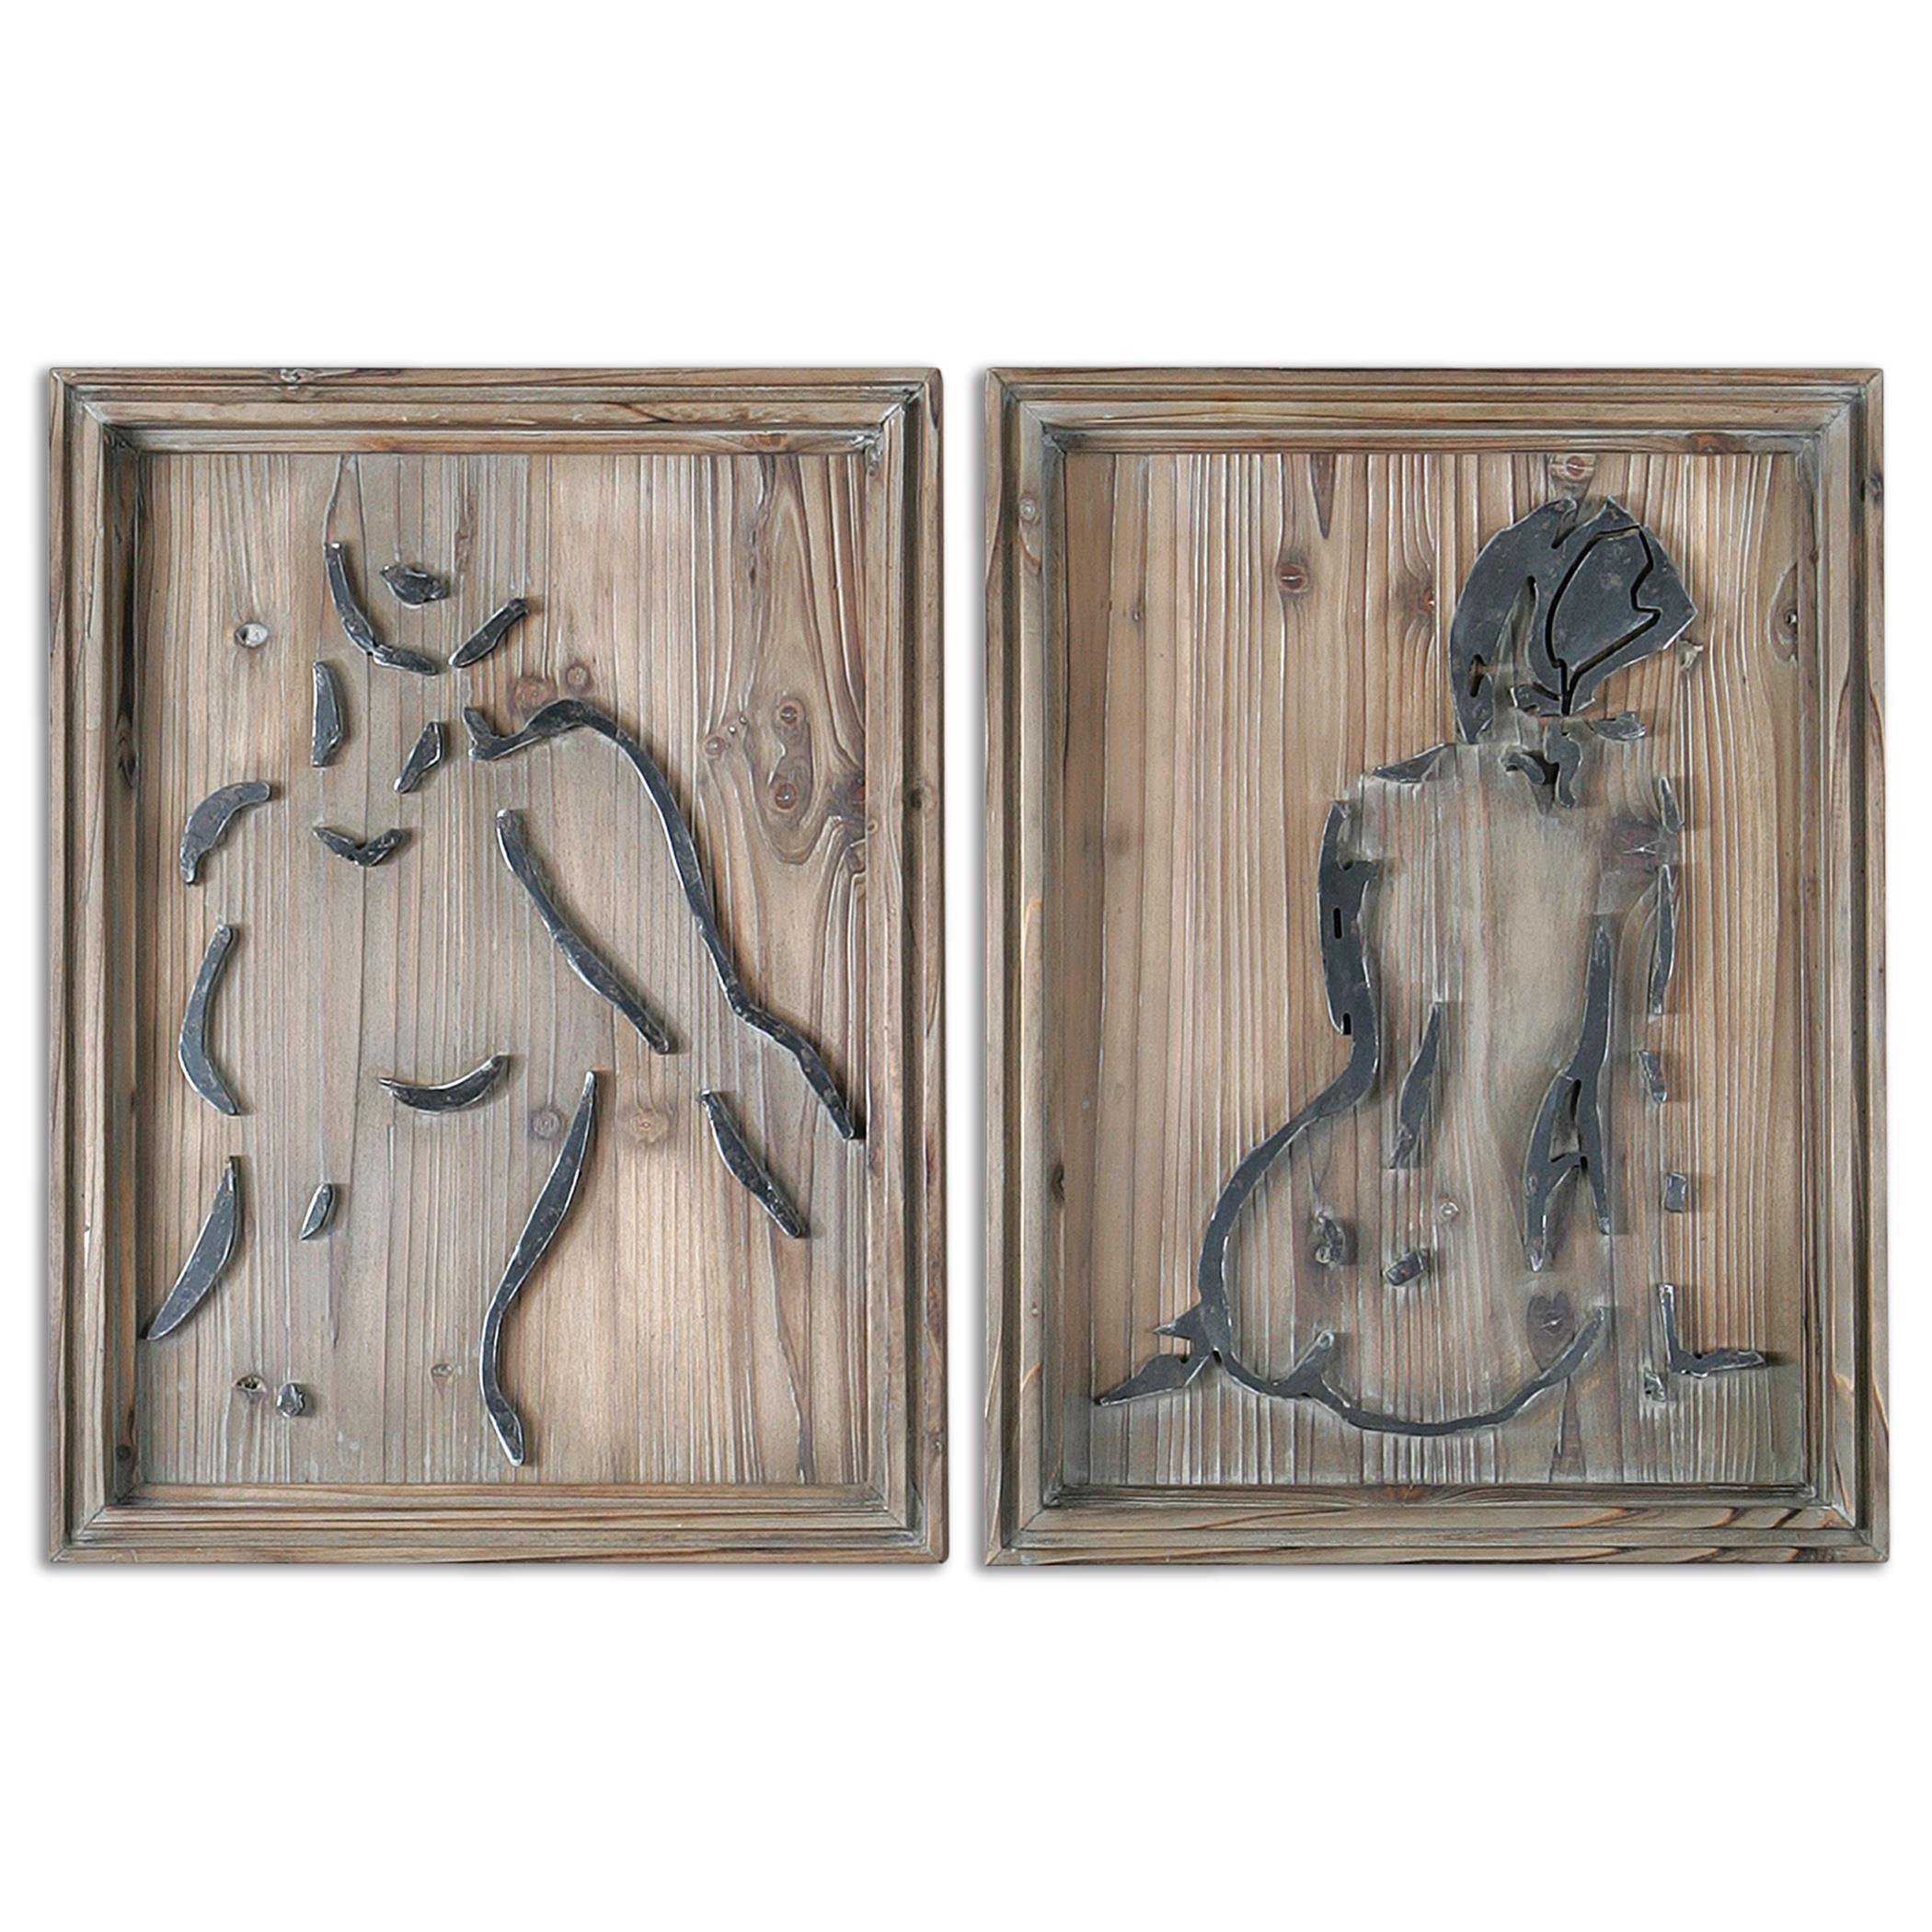 Uttermost Alternative Wall Decor Silhouettes Wood Wall Art S/2 - Item Number: 07690